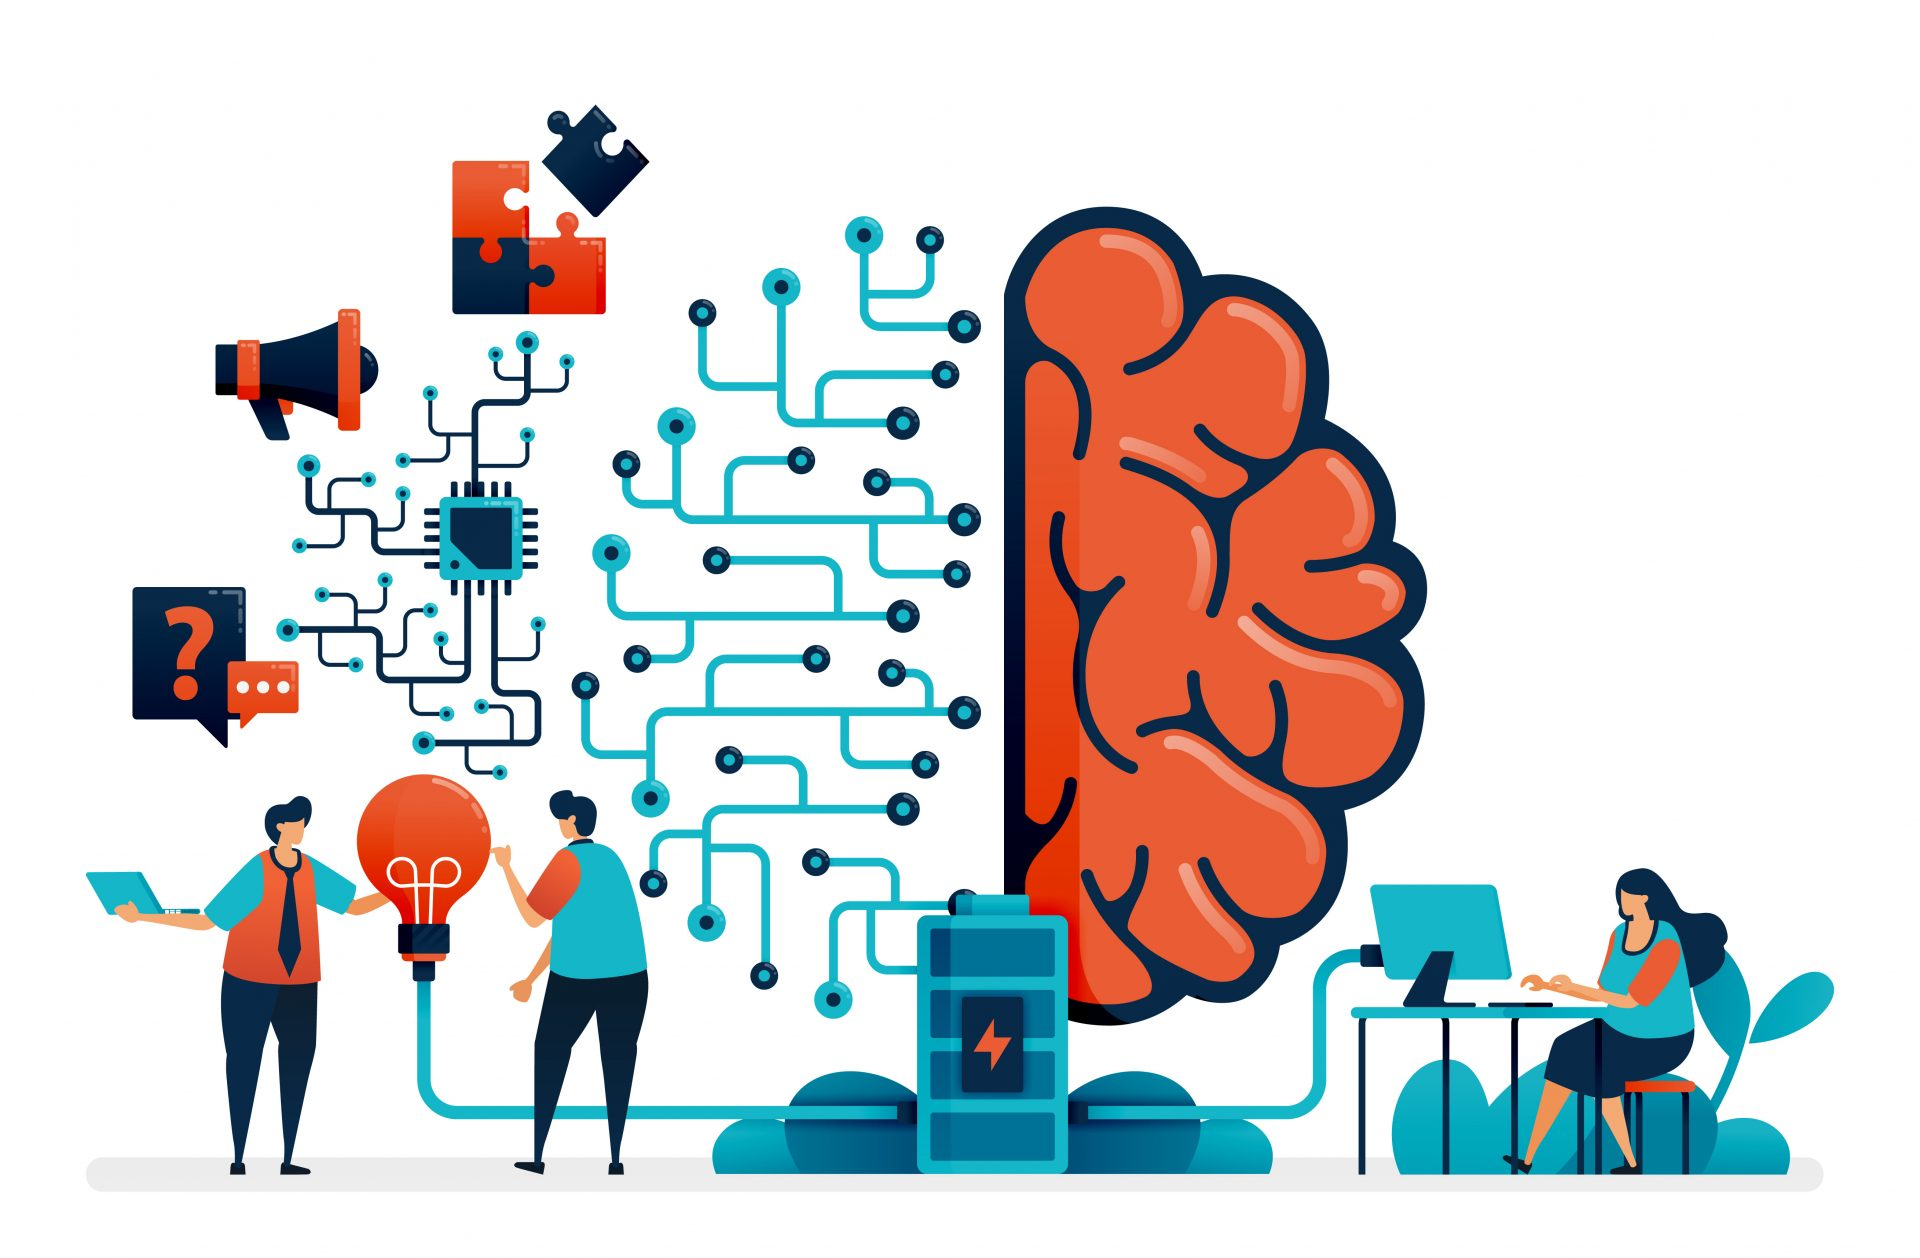 Artificial intelligence for problem solving. Artificial brain network system. Intelligence technology for question n answer, ideas, completing task, promotion. Business card, banner, brochure, flyer